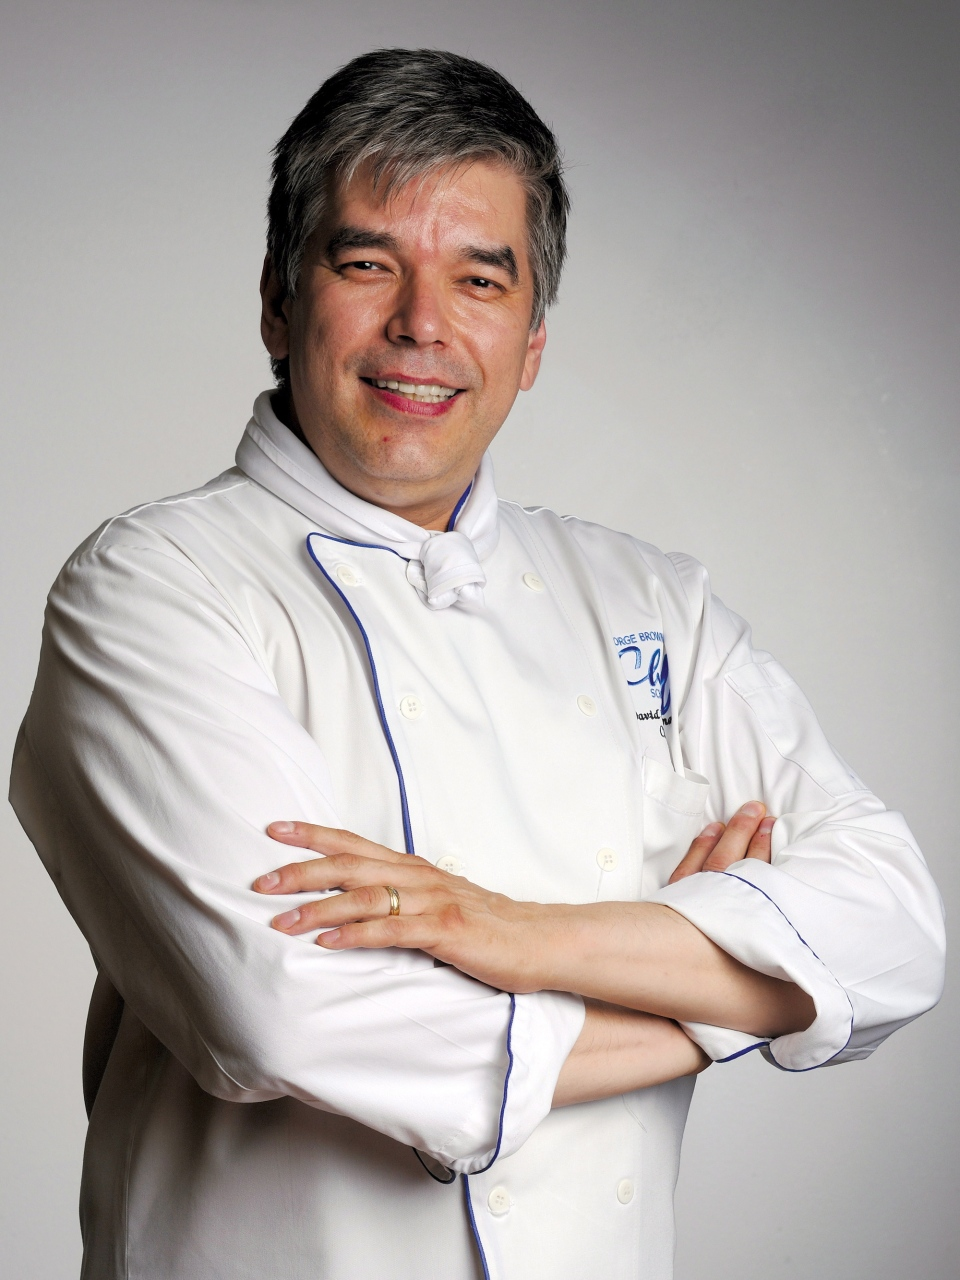 Chef David Wolfman is passionate about respecting the food traditions of his First Nations root. (THE CANADIAN PRESS/HO)